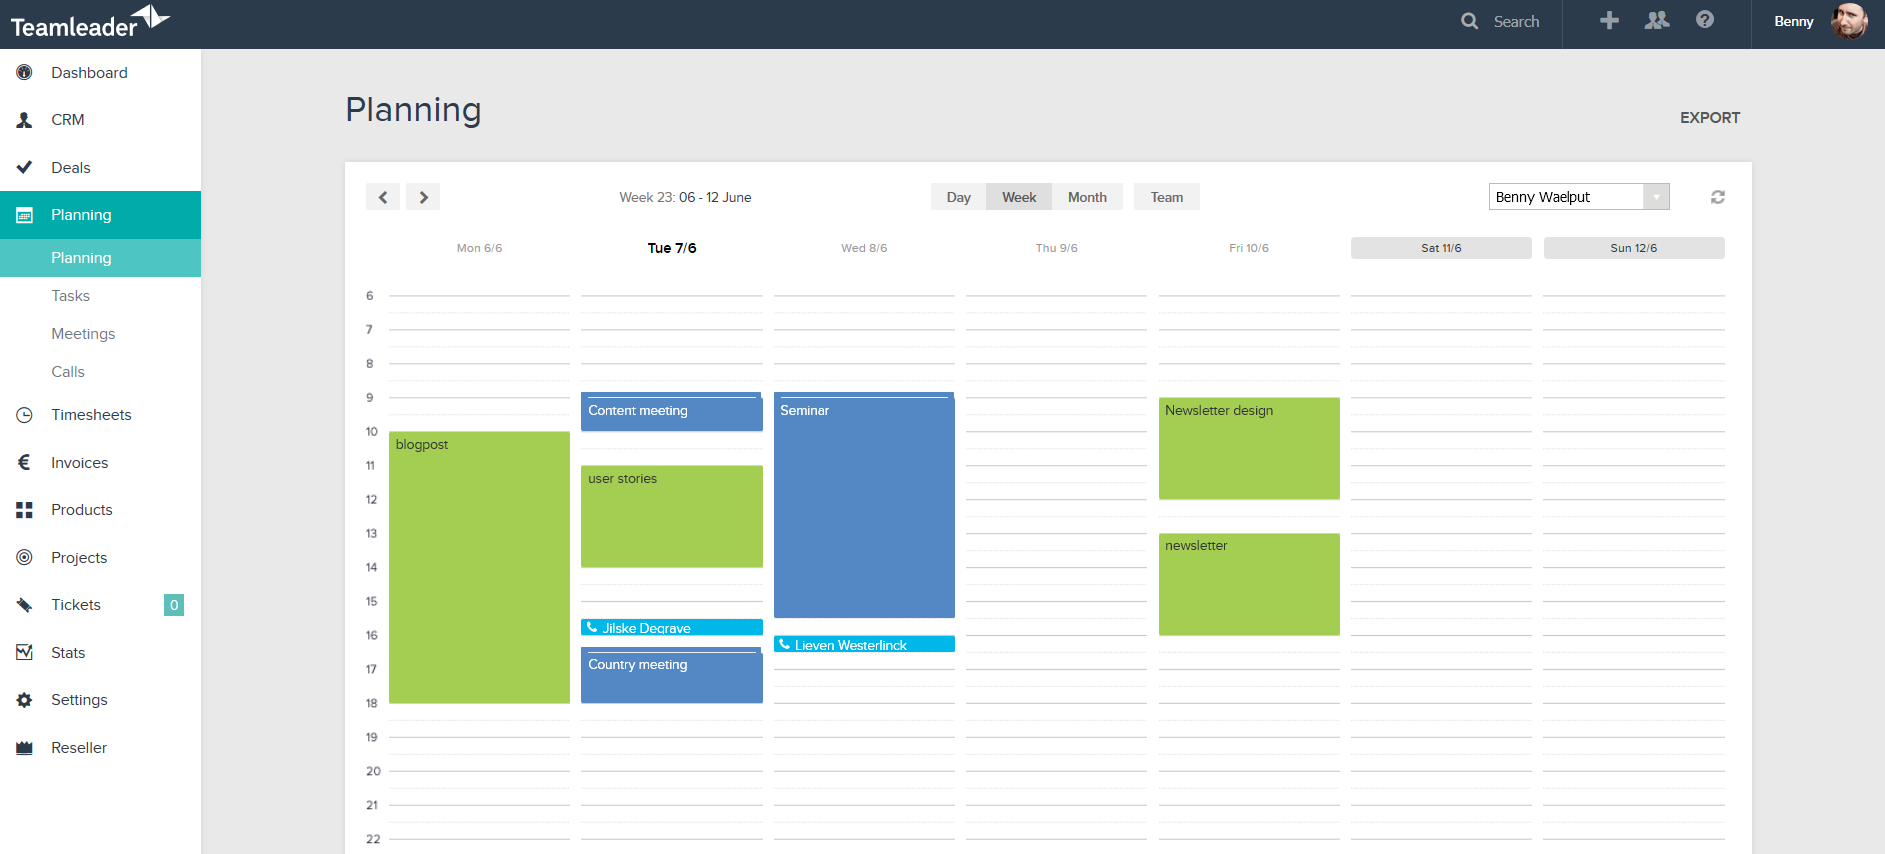 Tasks, meetings, and calls can each be assigned a color code, so you can visualize at a glance the activity types you need done per day, week, or month